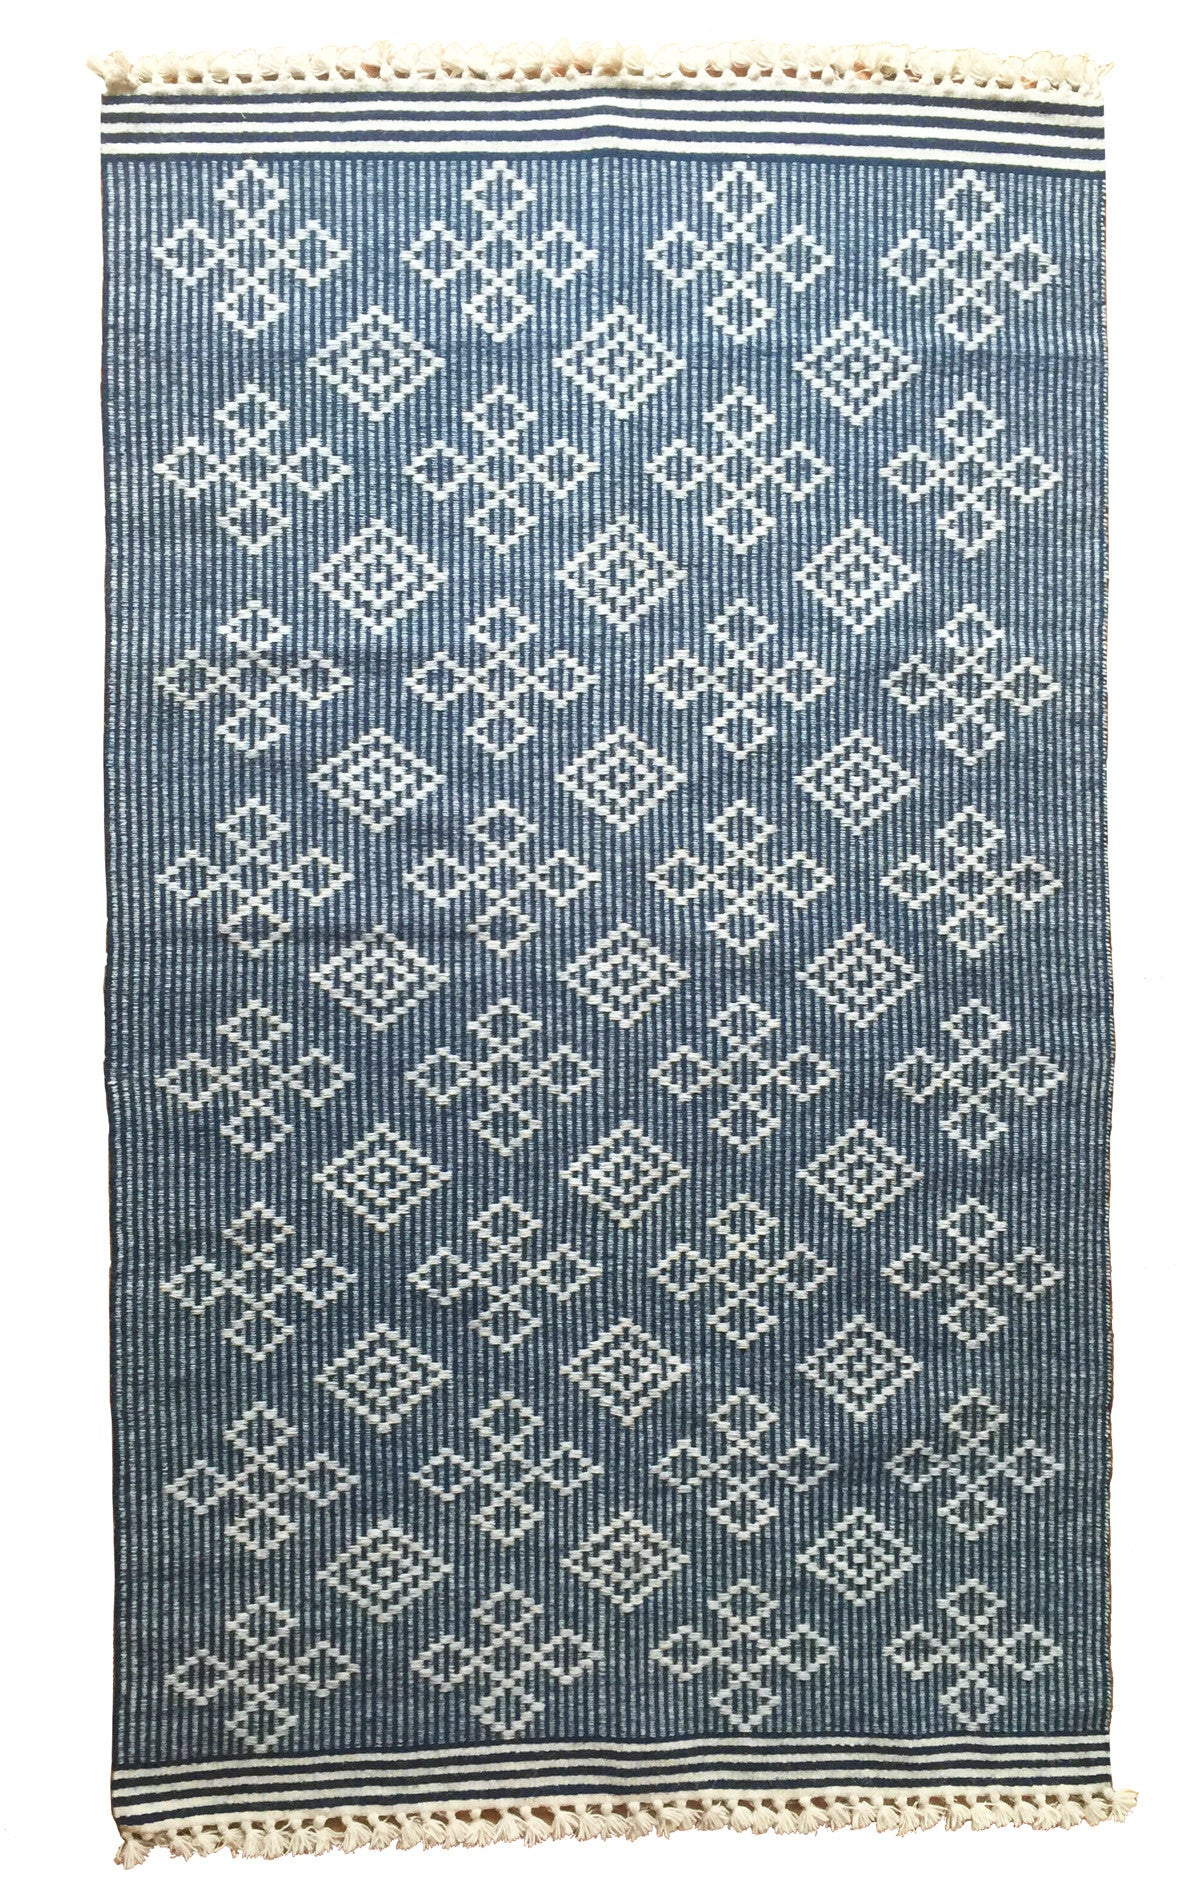 SUNDAY/MONDAY Handwoven Indian 100% Wool Rug Textile, Kuran, made in Kutch, Gujarat. Navy blue flatweave statement rug.